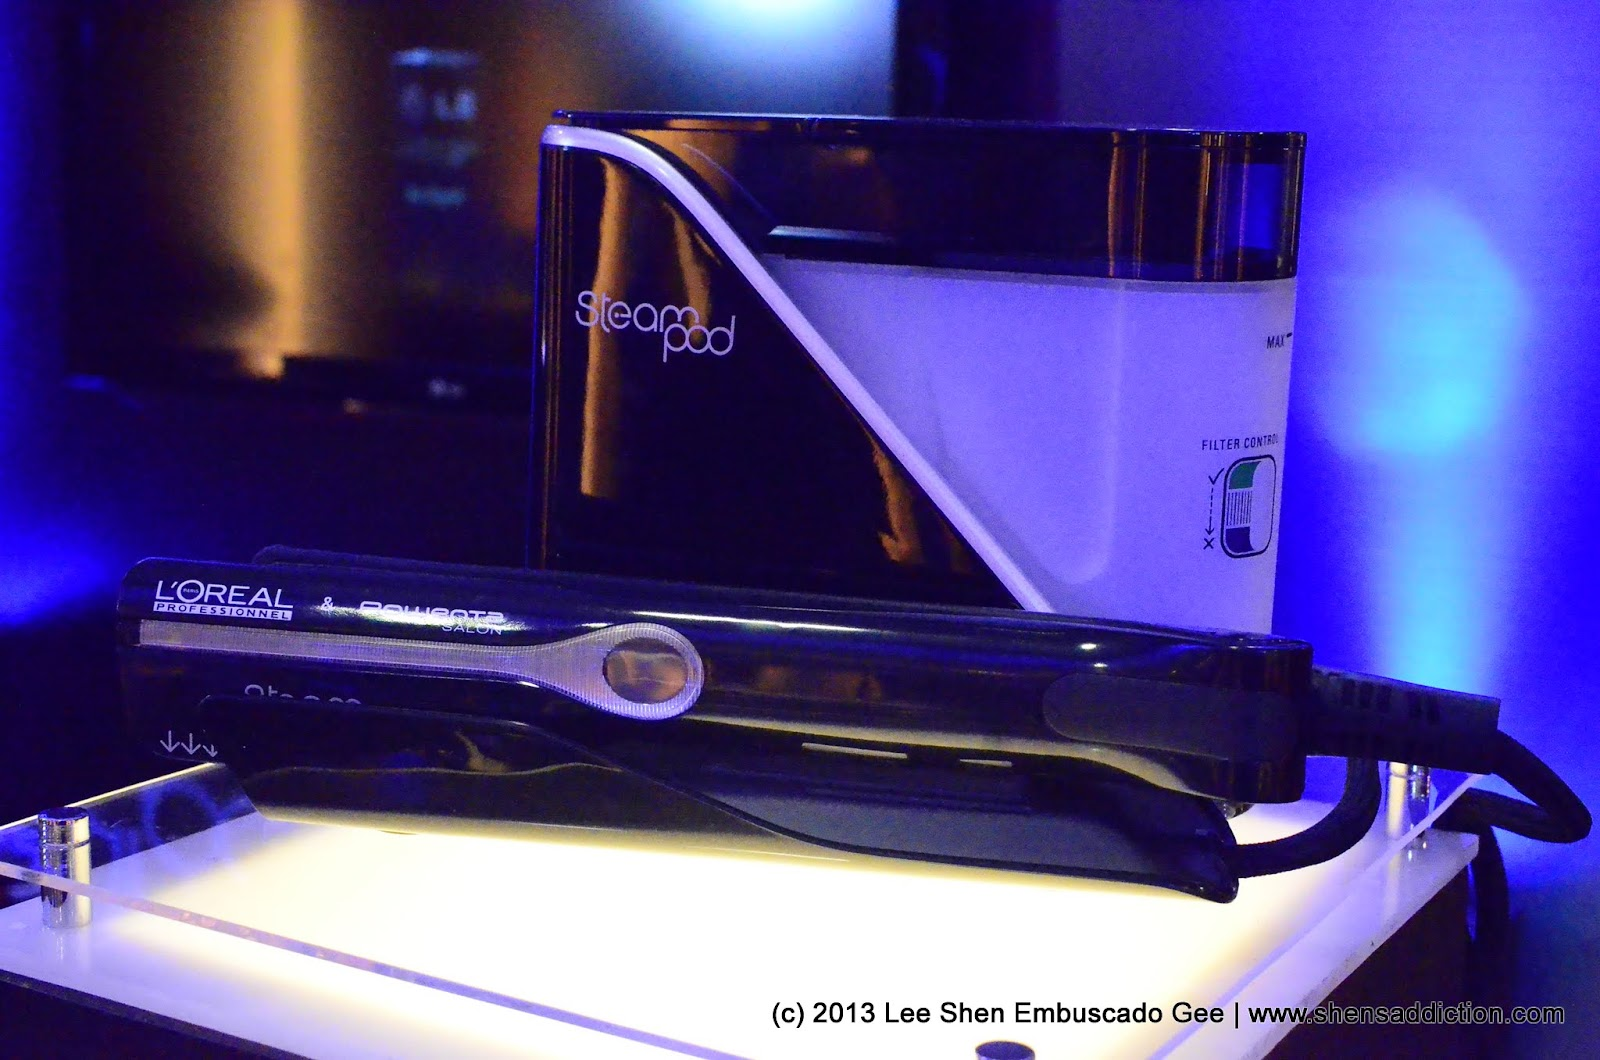 The uncurated life l 39 oreal steampod steam care at bench for Steampod salon